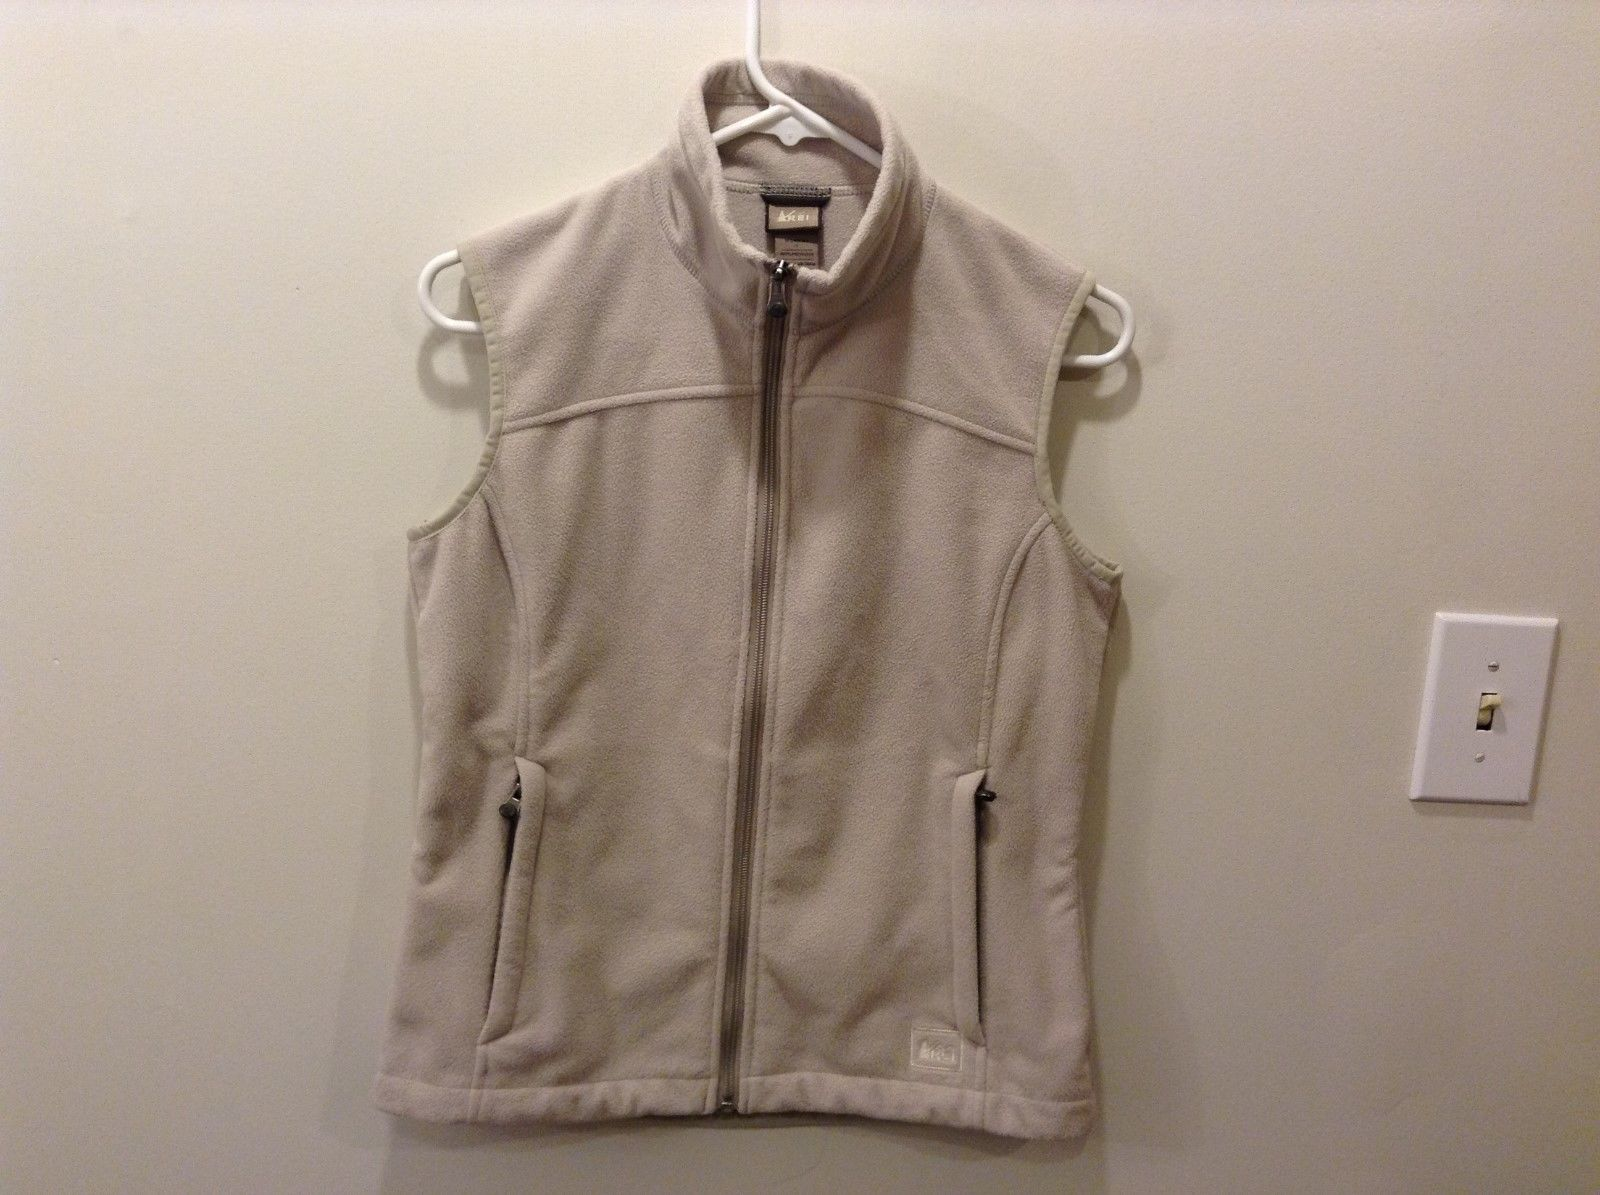 Women's REI Taupe Creamy Gray Tan Fleece-y Outdoor Vest Size Small